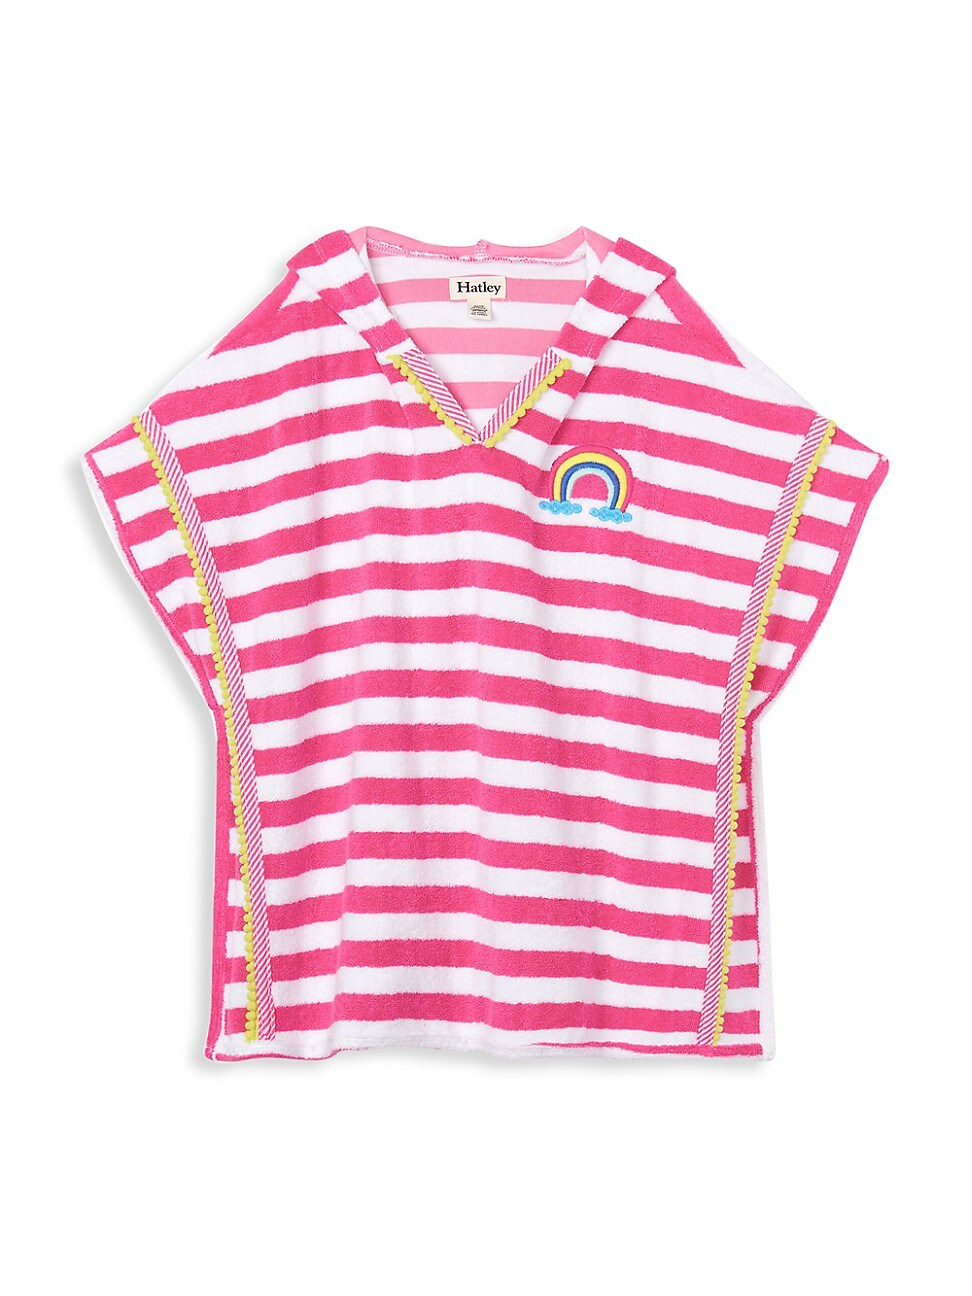 Hatley Tops LITTLE GIRL'S AND GIRL'S OVER THE RAINBOW HOODED COVER UP